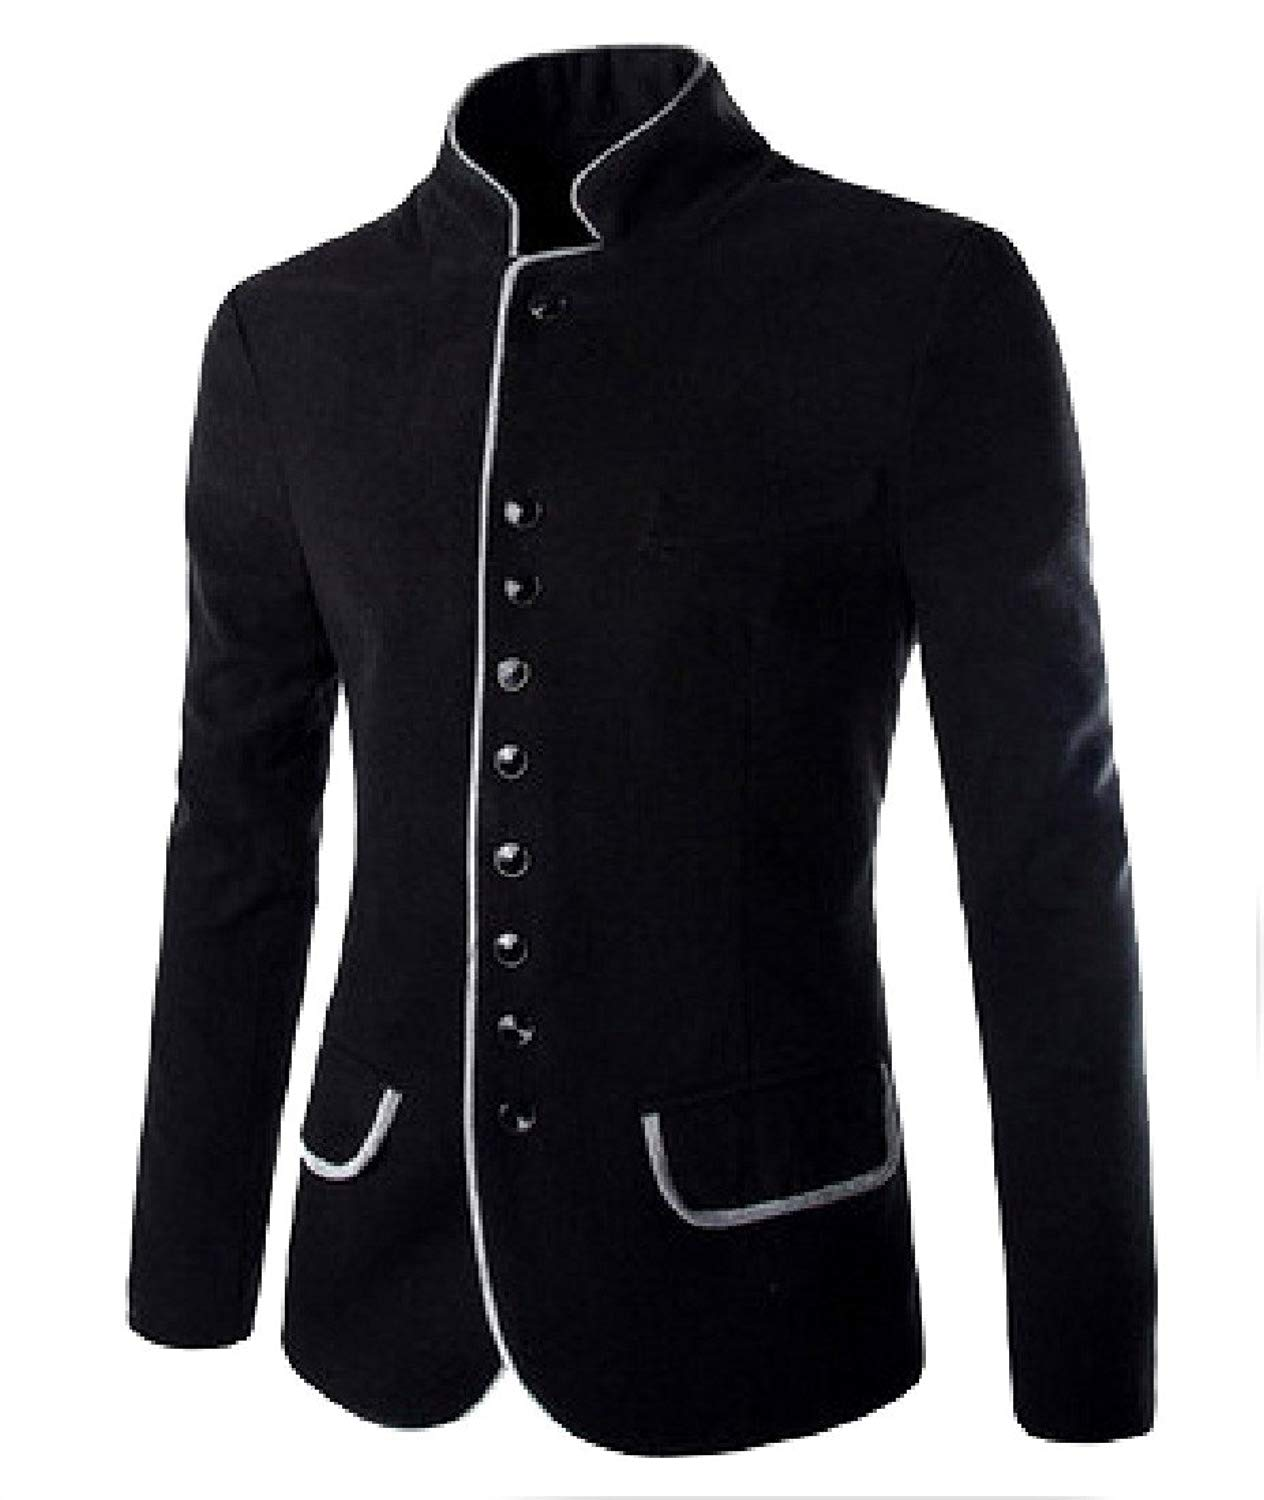 Abetteric Mens Stand Collar Wool Blend Lounge Jackets Suit